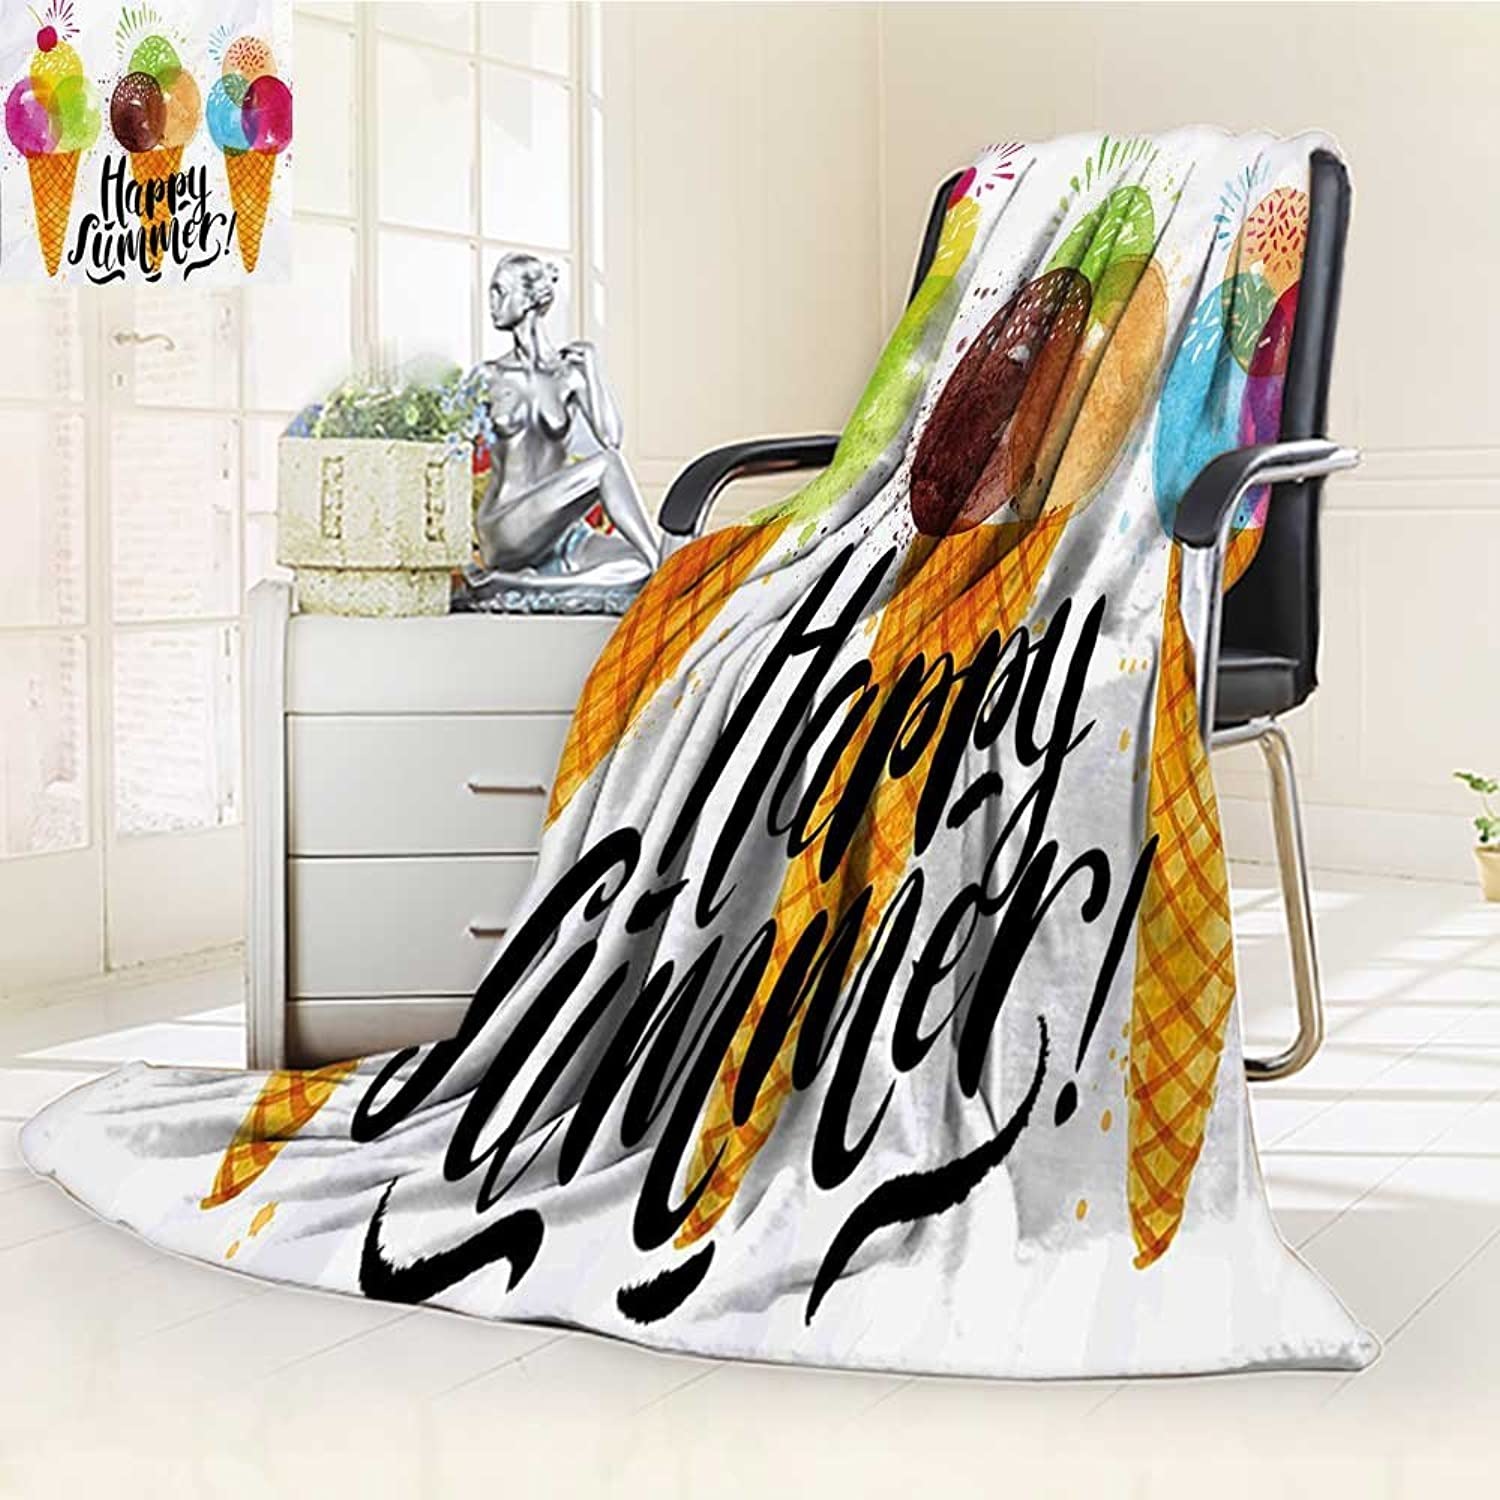 YOYI-HOME Season Duplex Printed Blanket for Bed Or Couch Food Print of Ice Cream Cones and Fruit Milk Dessert for Kids Sequal Artwork Multicolor Warm Microfiber W39.5  x H59